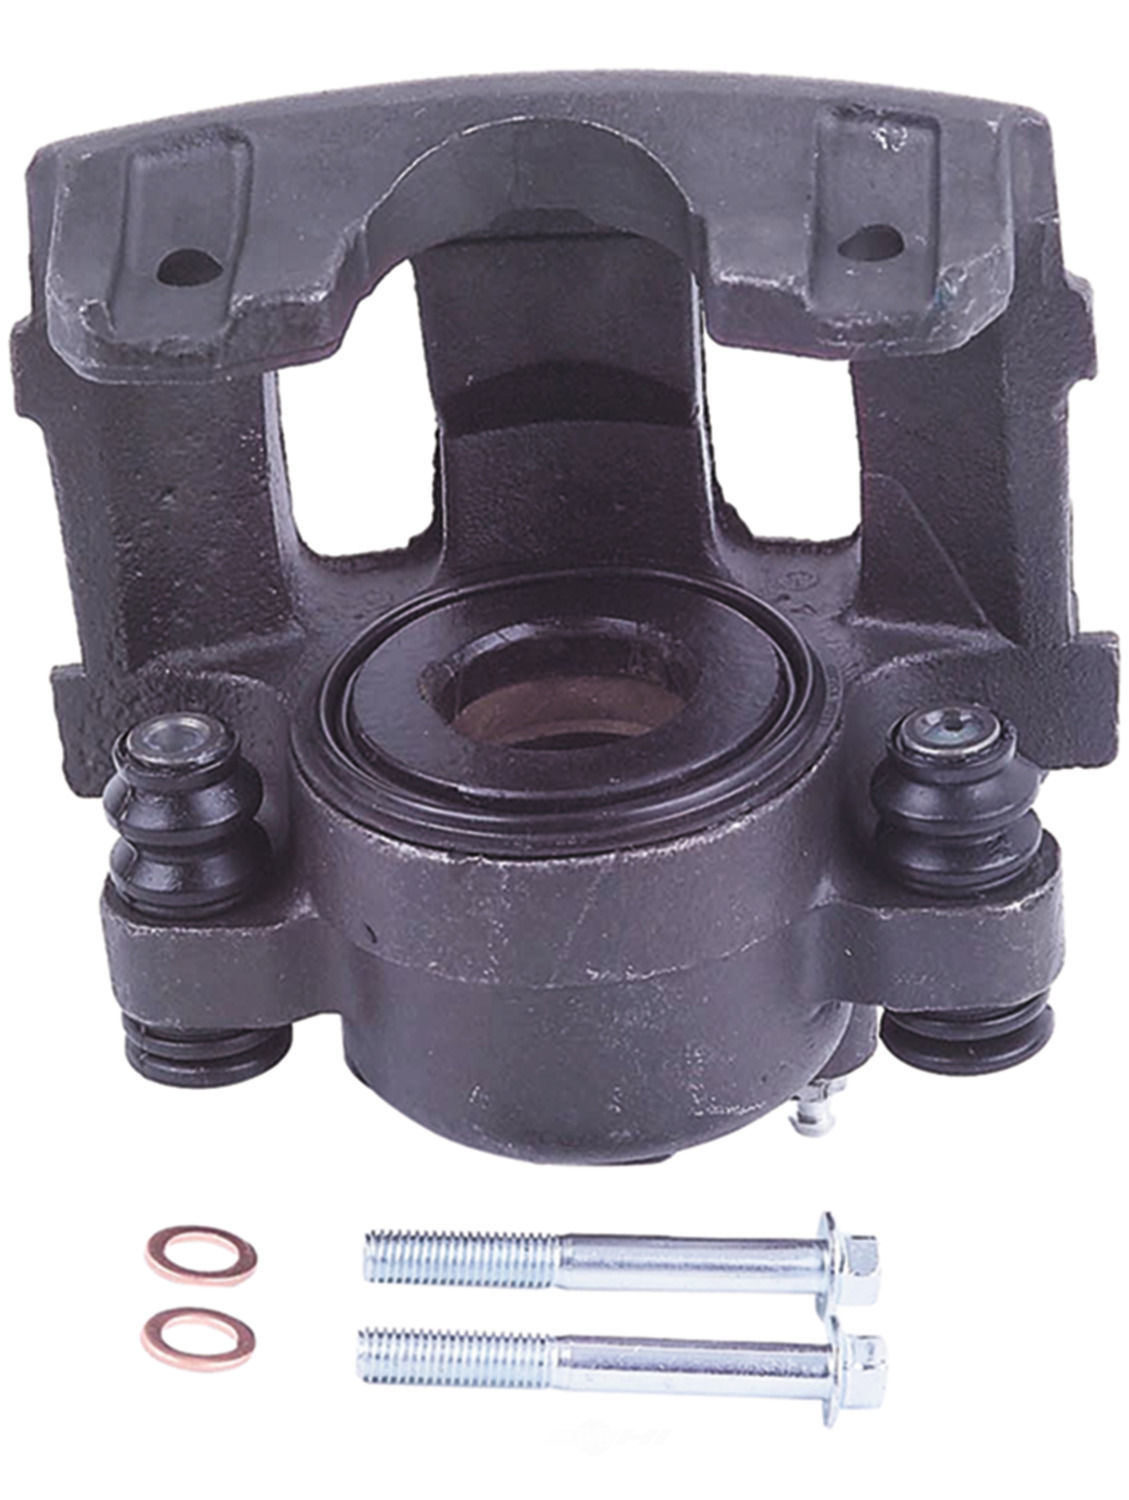 CARDONE REMAN - Unloaded Caliper - A1C 18-4339